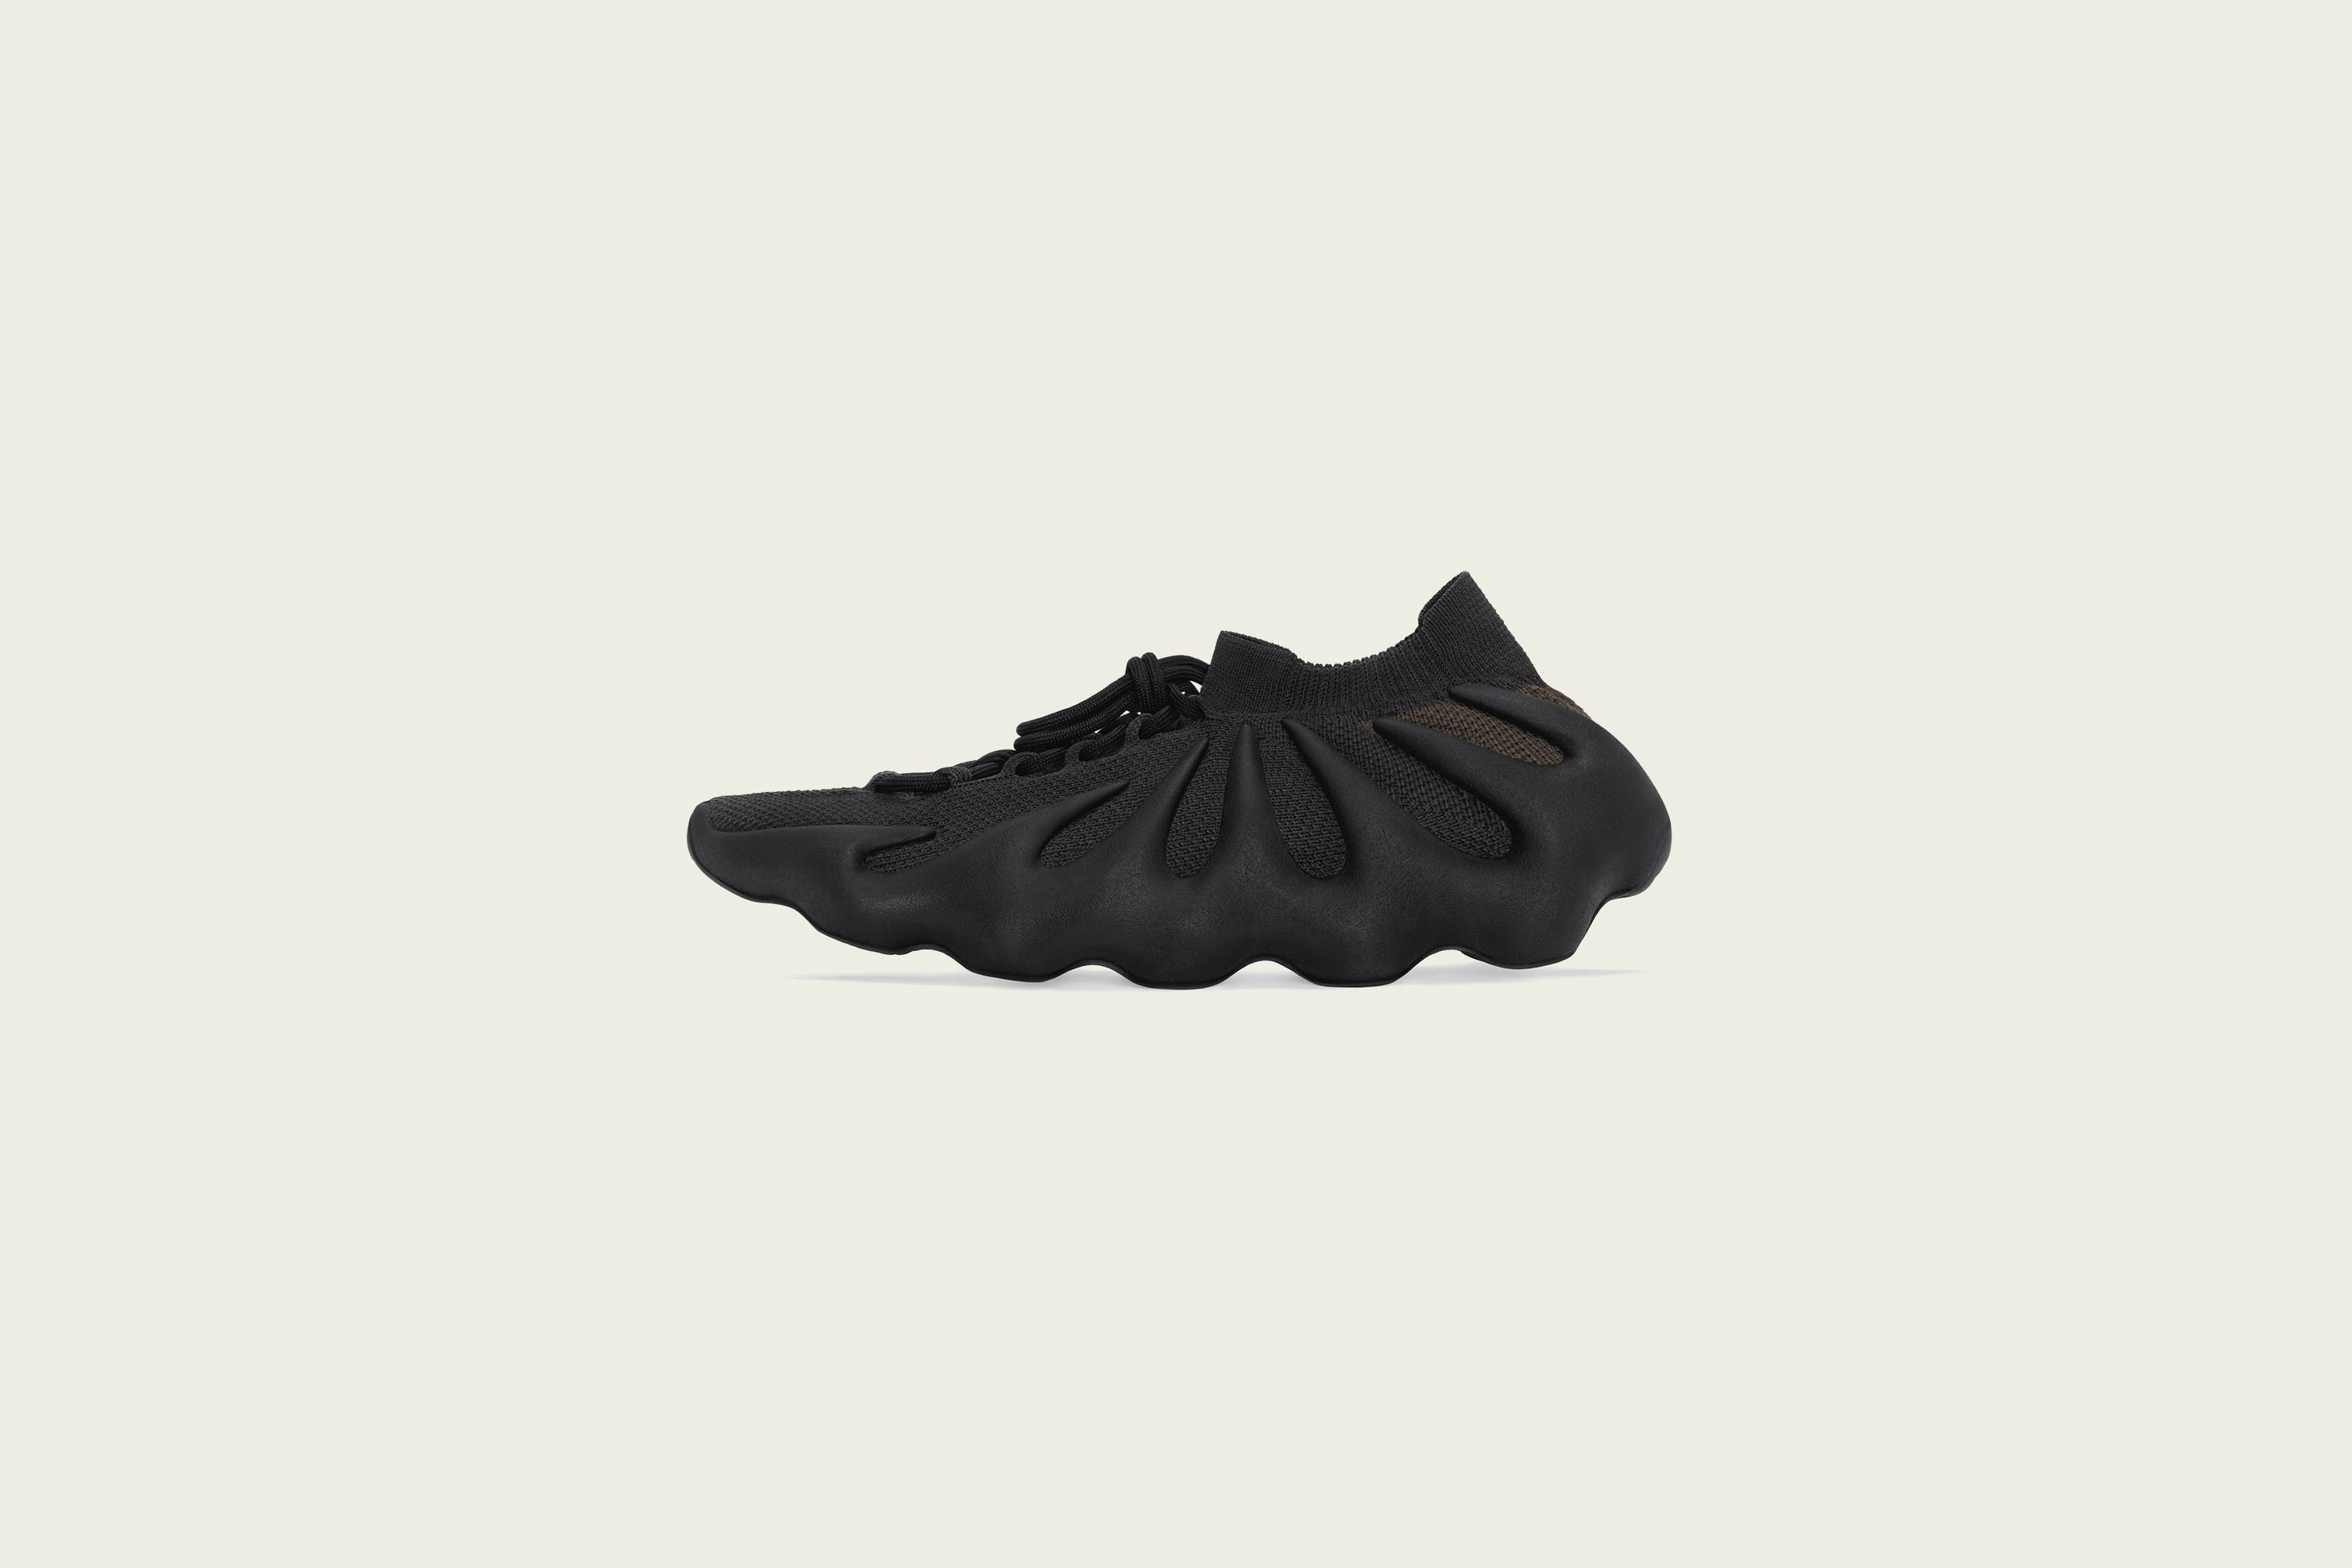 Up There Launches - adidas Originals Kanye West Yeezy 450 'Dark Slate'